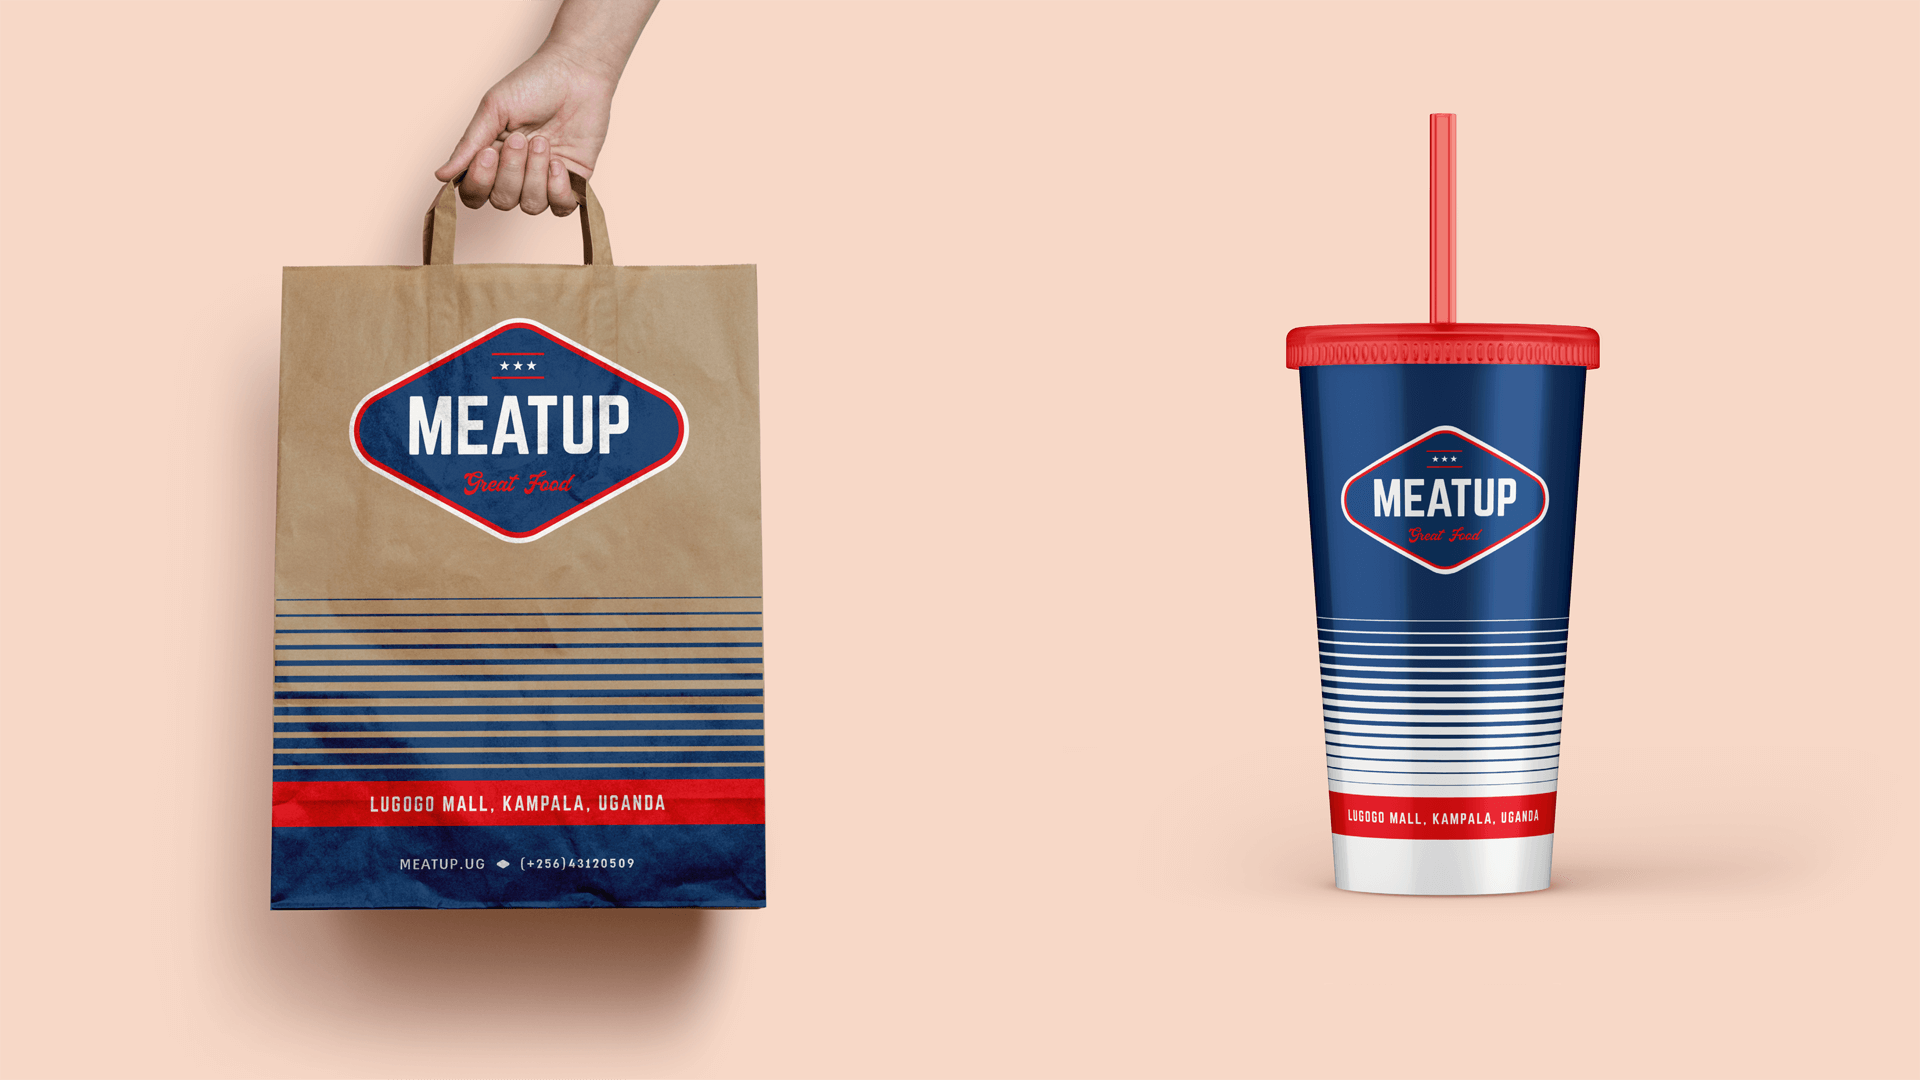 Meatup packaging